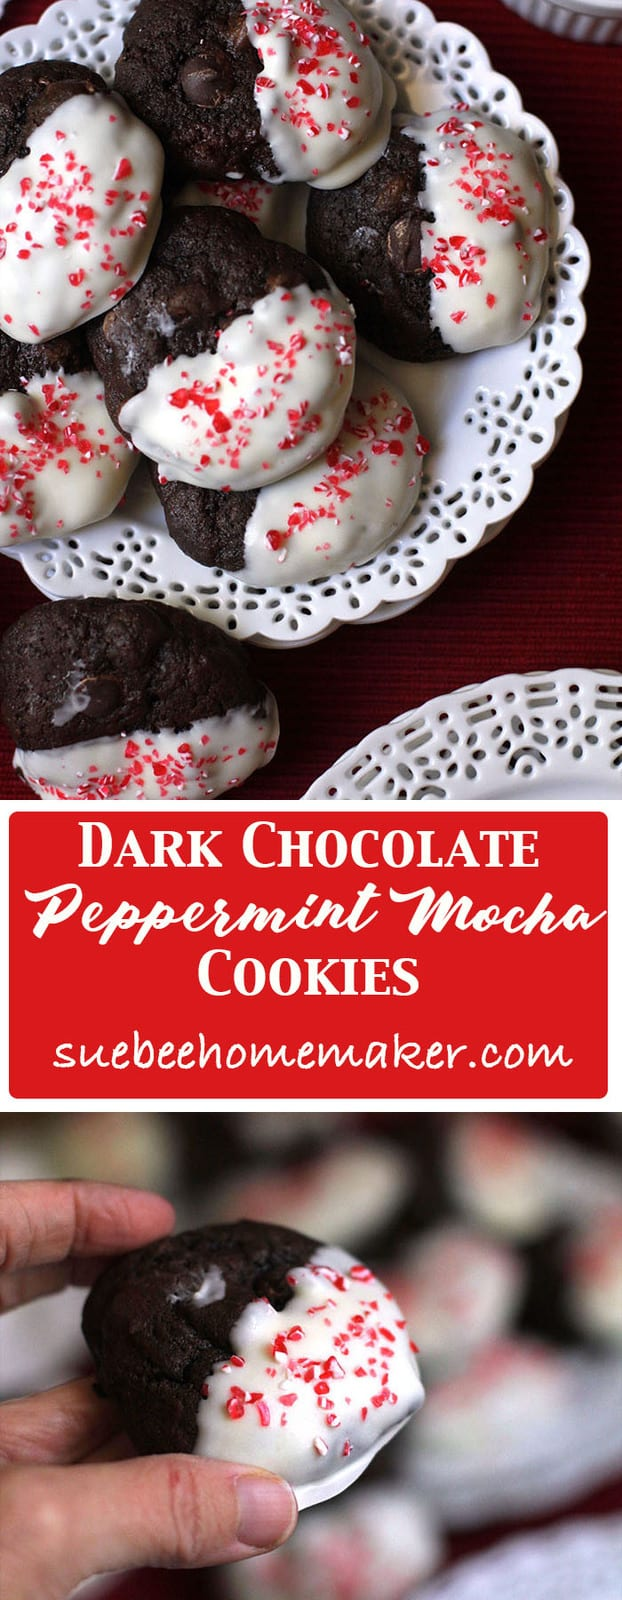 Dark Chocolate Peppermint Mocha Cookies take a simple chocolate cookie and make it festive by dipping in white chocolate topped with peppermint sprinkles! | suebeehomemaker.com